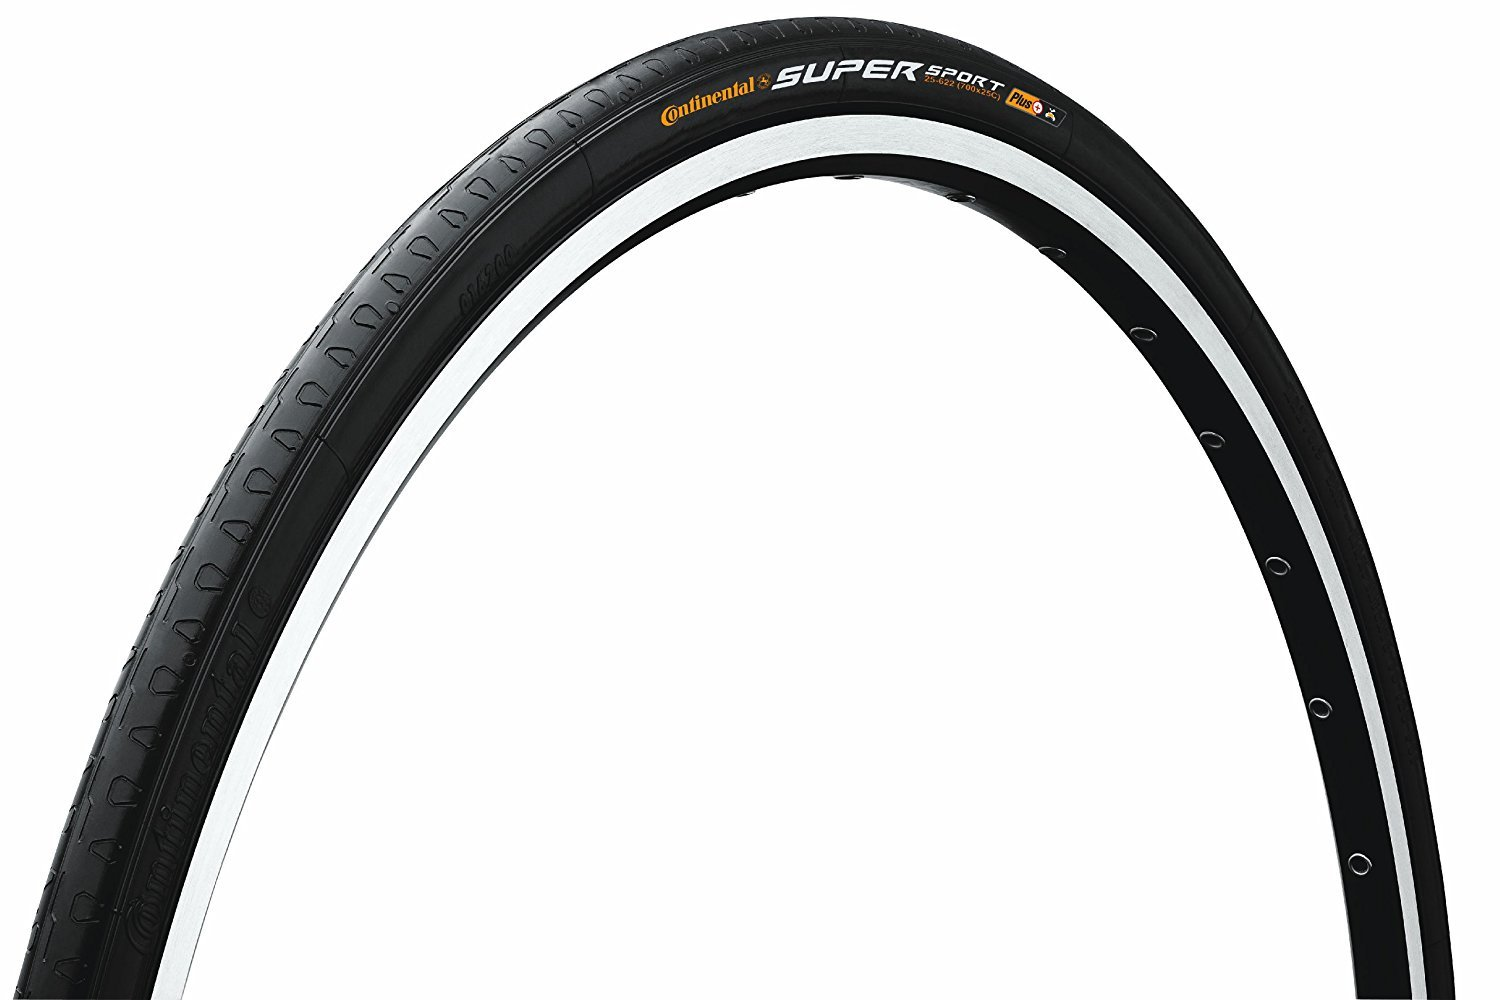 Continental SuperSport Plus Urban Bicycle Tire (700x25) [並行輸入品] B077QG2NGB